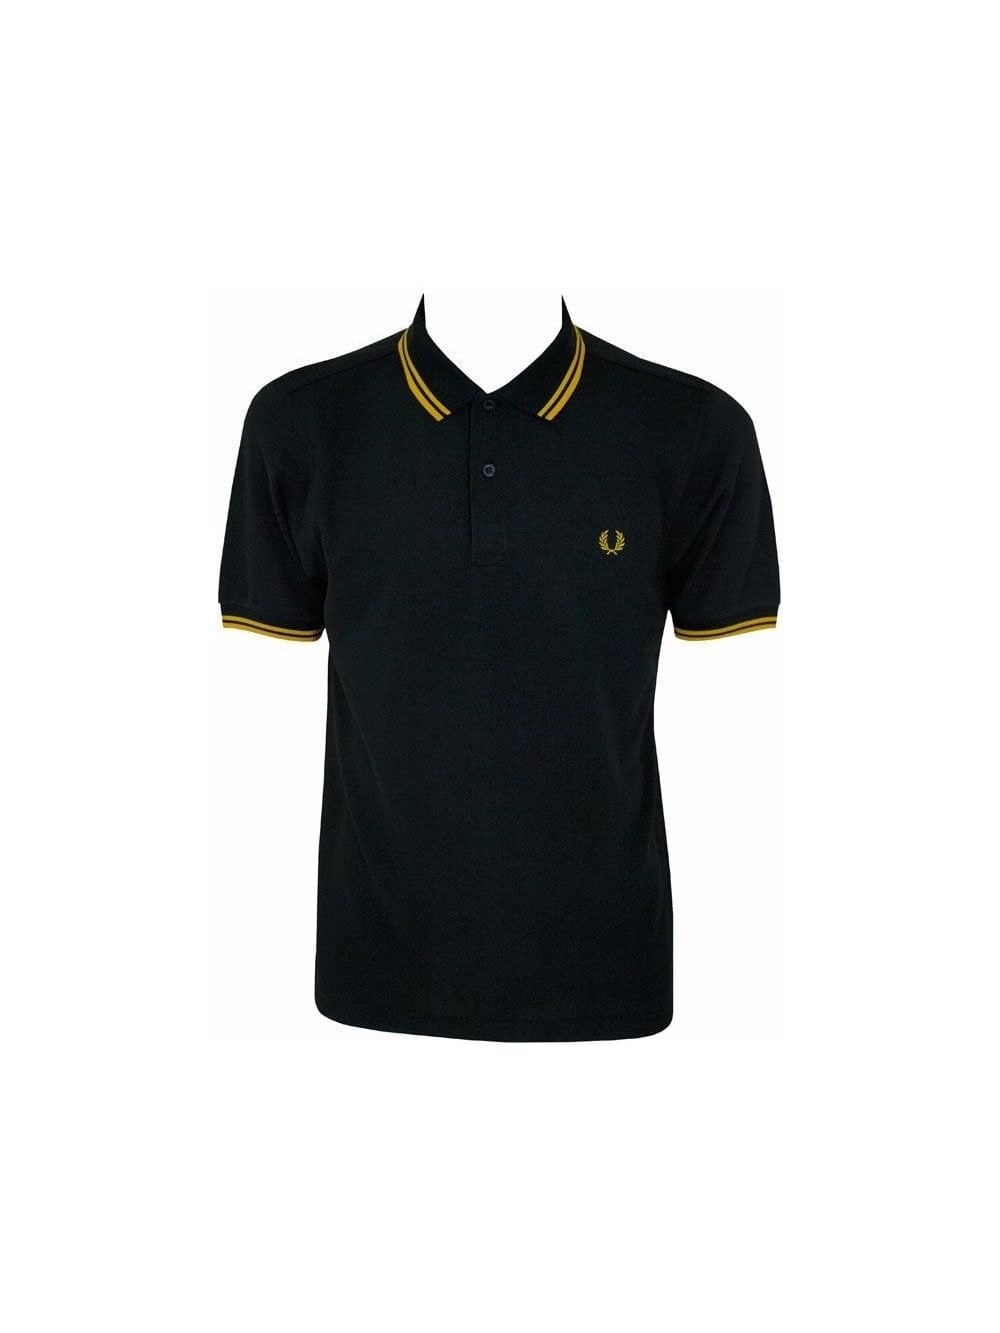 0da91ed73 Fred Perry Slim Fit Twin Tipped Polo in Black/Yellow - Shop Fred ...